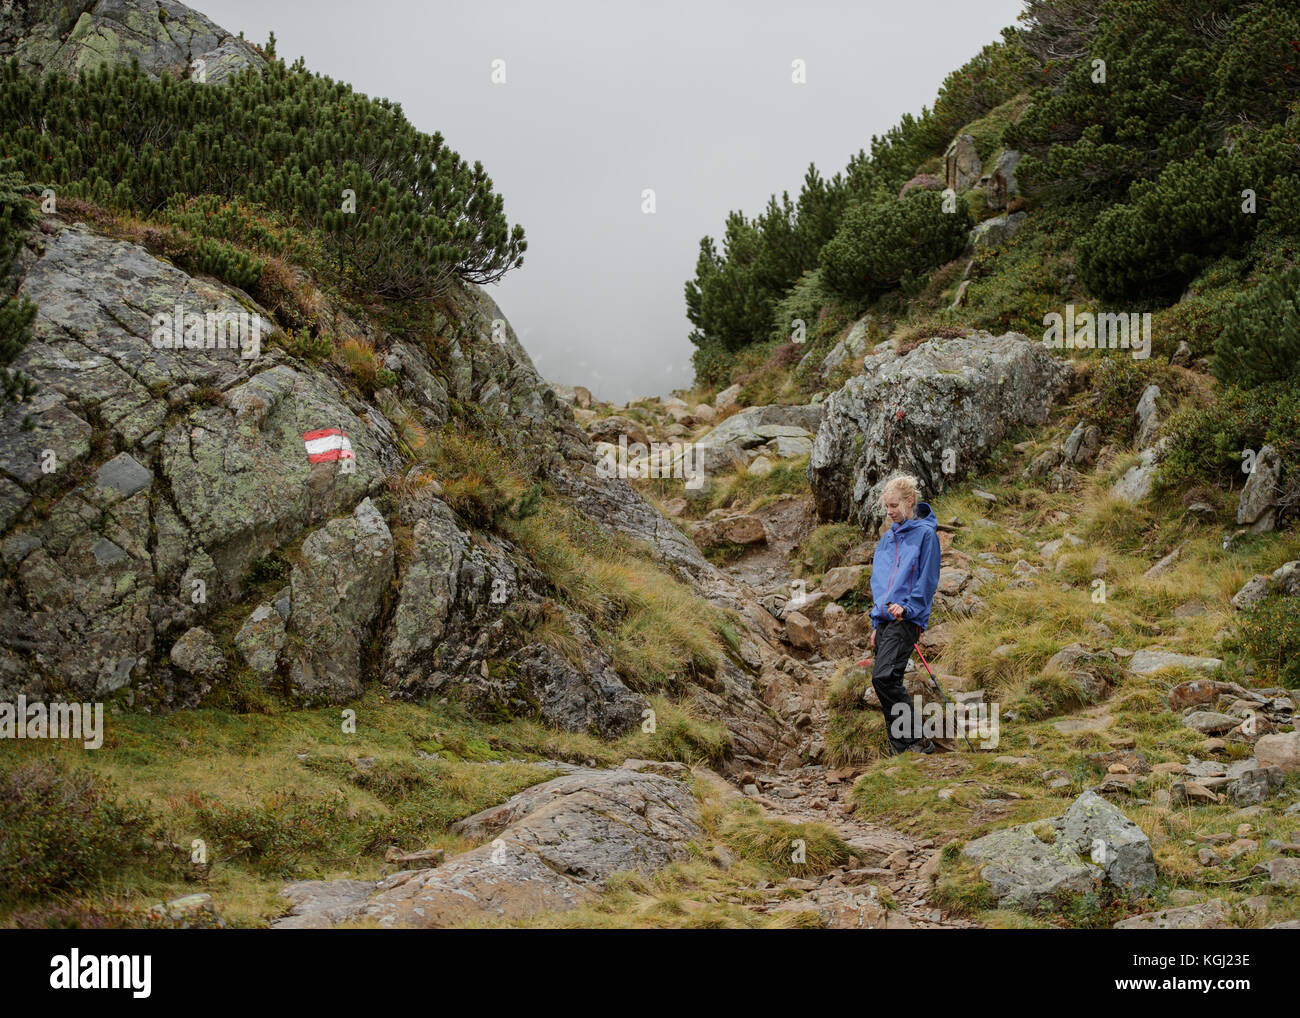 A woman hiking in the Austrian Mountains - Stock Image